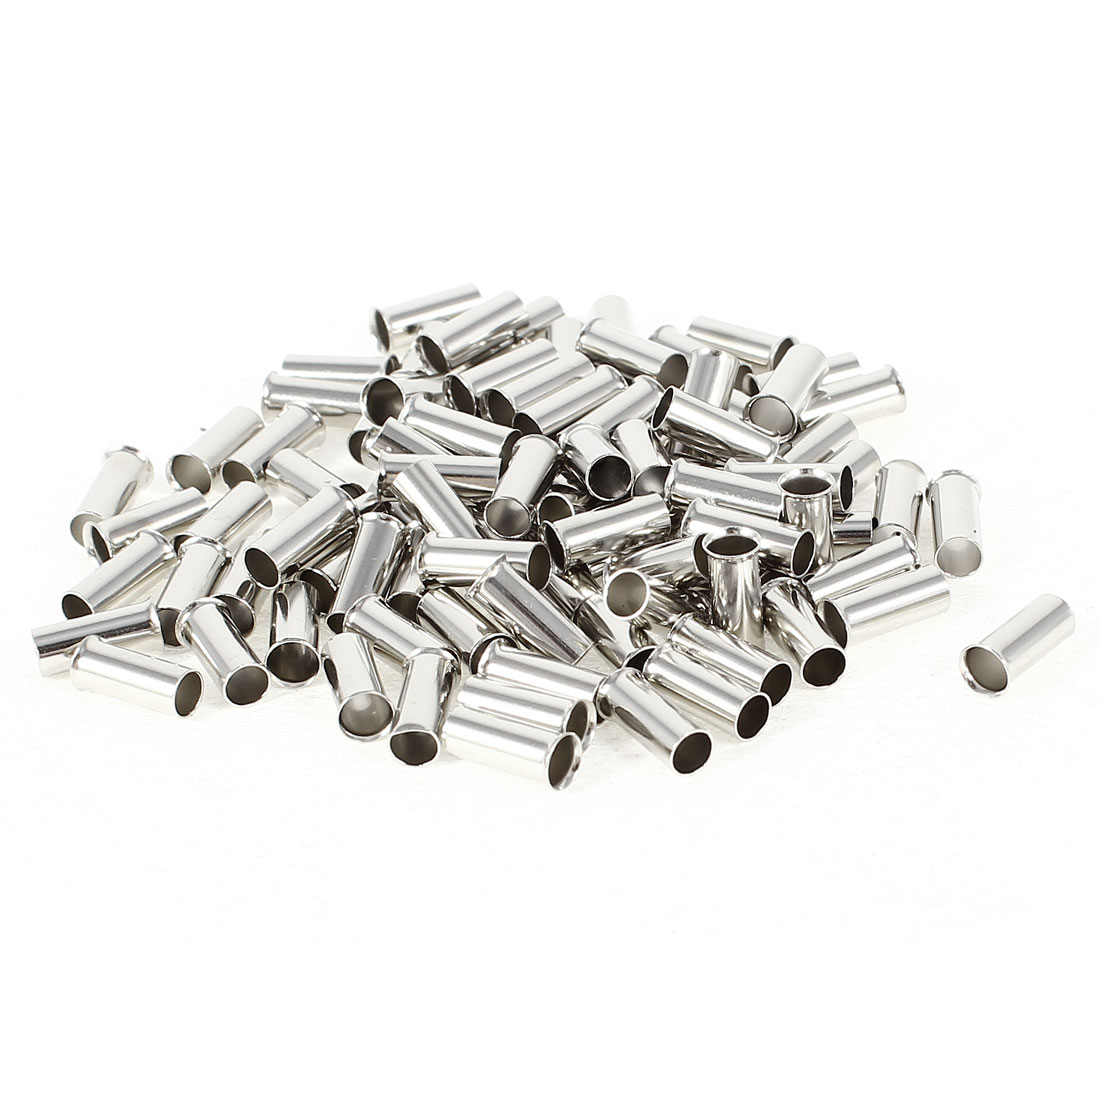 100 Pieces Silver Tone EN4009 Copper A.W.G 12 8mmx4mm Non-Insulated Wire Ferrule